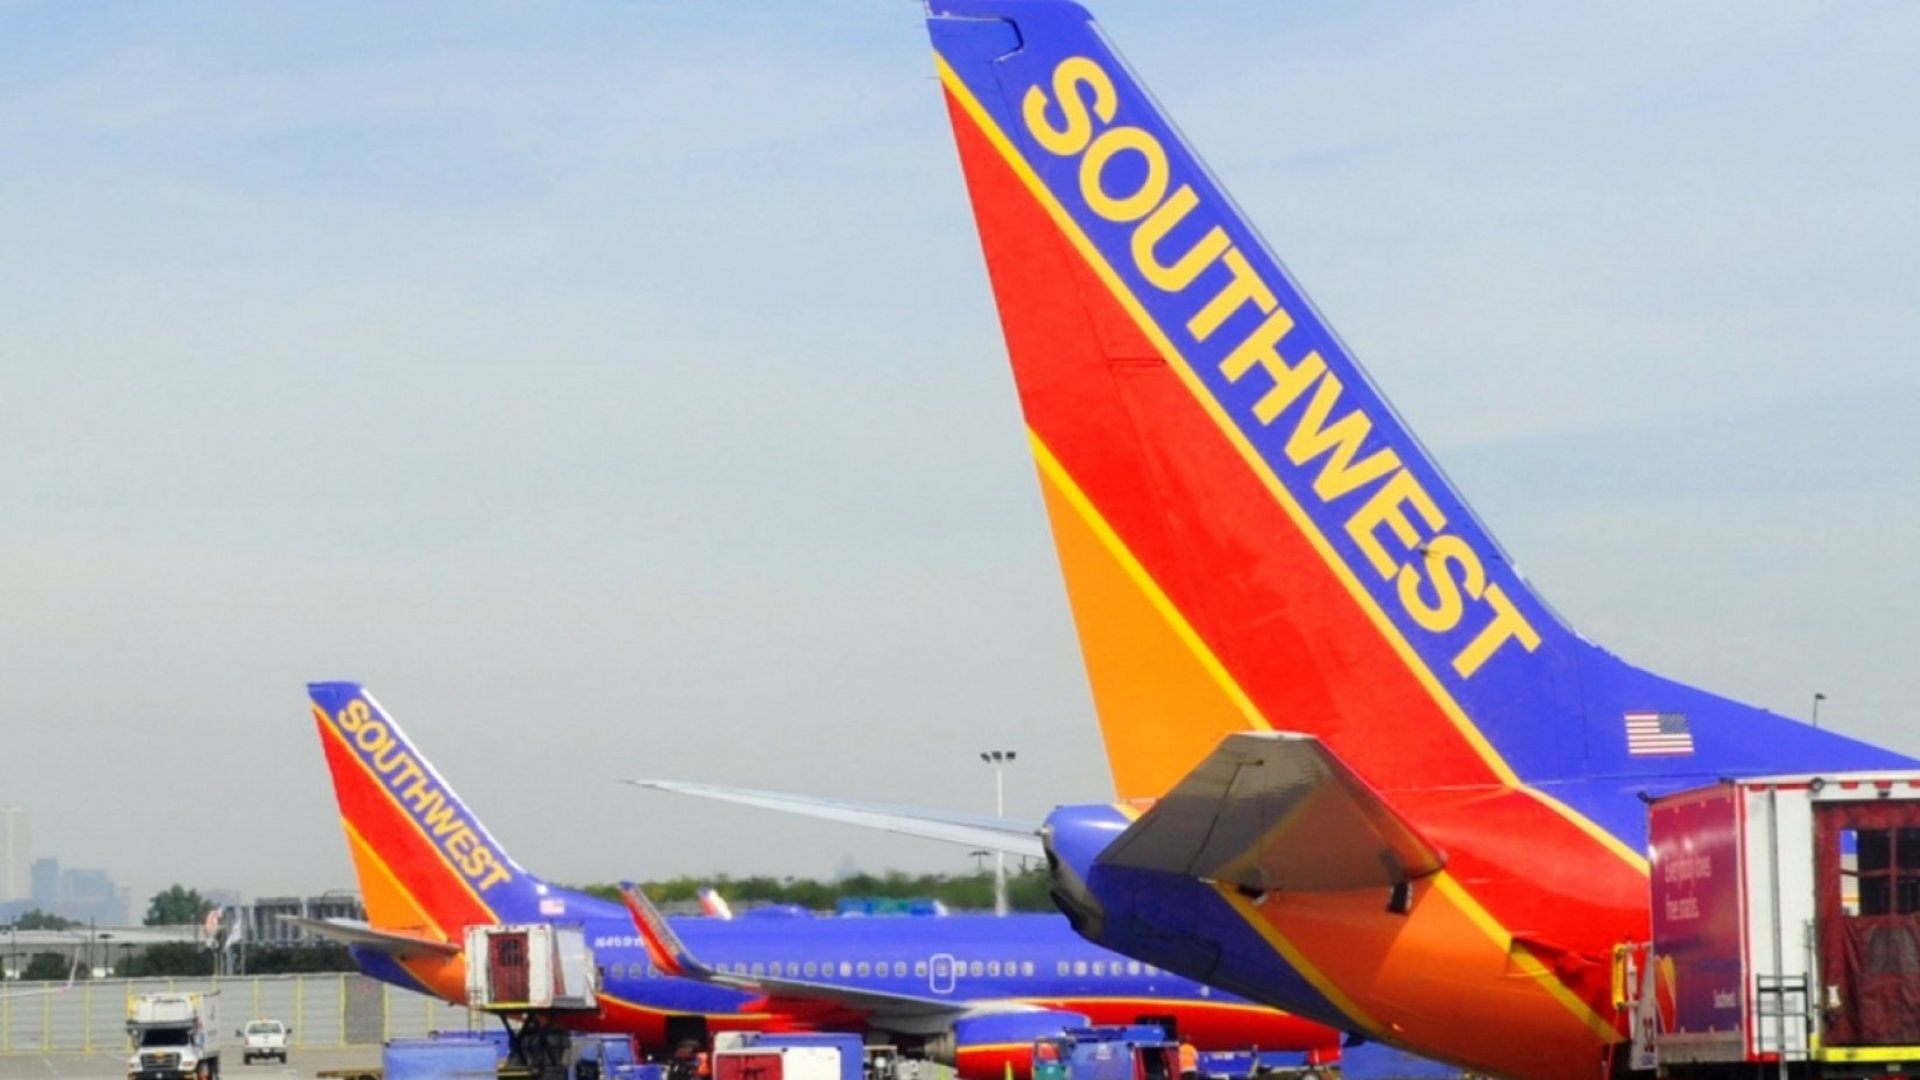 This Viral Southwest Airlines Flight Attendant's Safety Brief is Hilarious. But There's 1 Big Problem